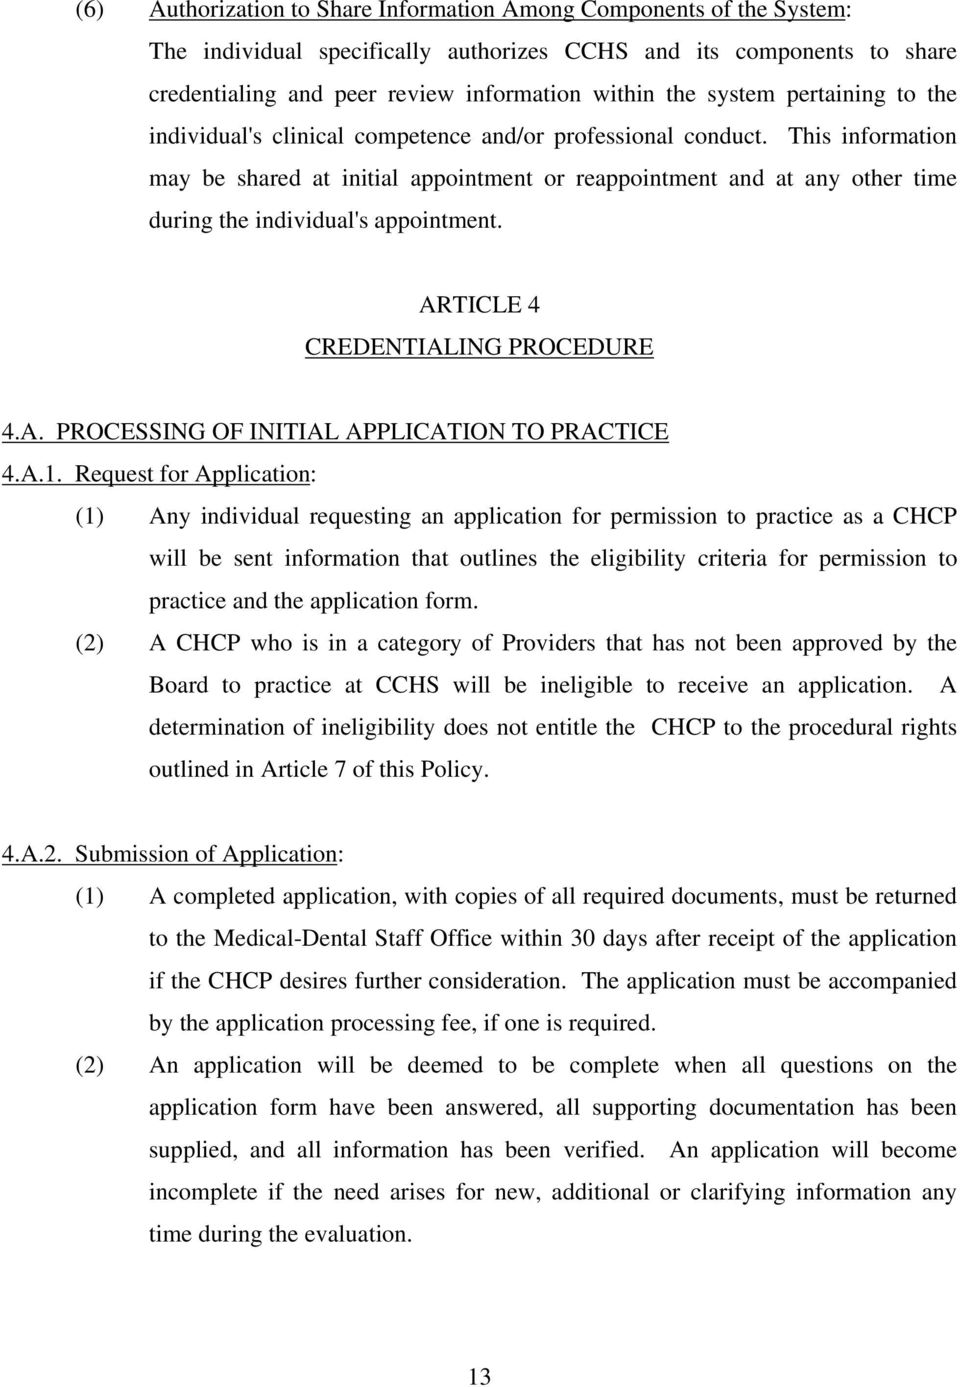 This information may be shared at initial appointment or reappointment and at any other time during the individual's appointment. ARTICLE 4 CREDENTIALING PROCEDURE 4.A. PROCESSING OF INITIAL APPLICATION TO PRACTICE 4.